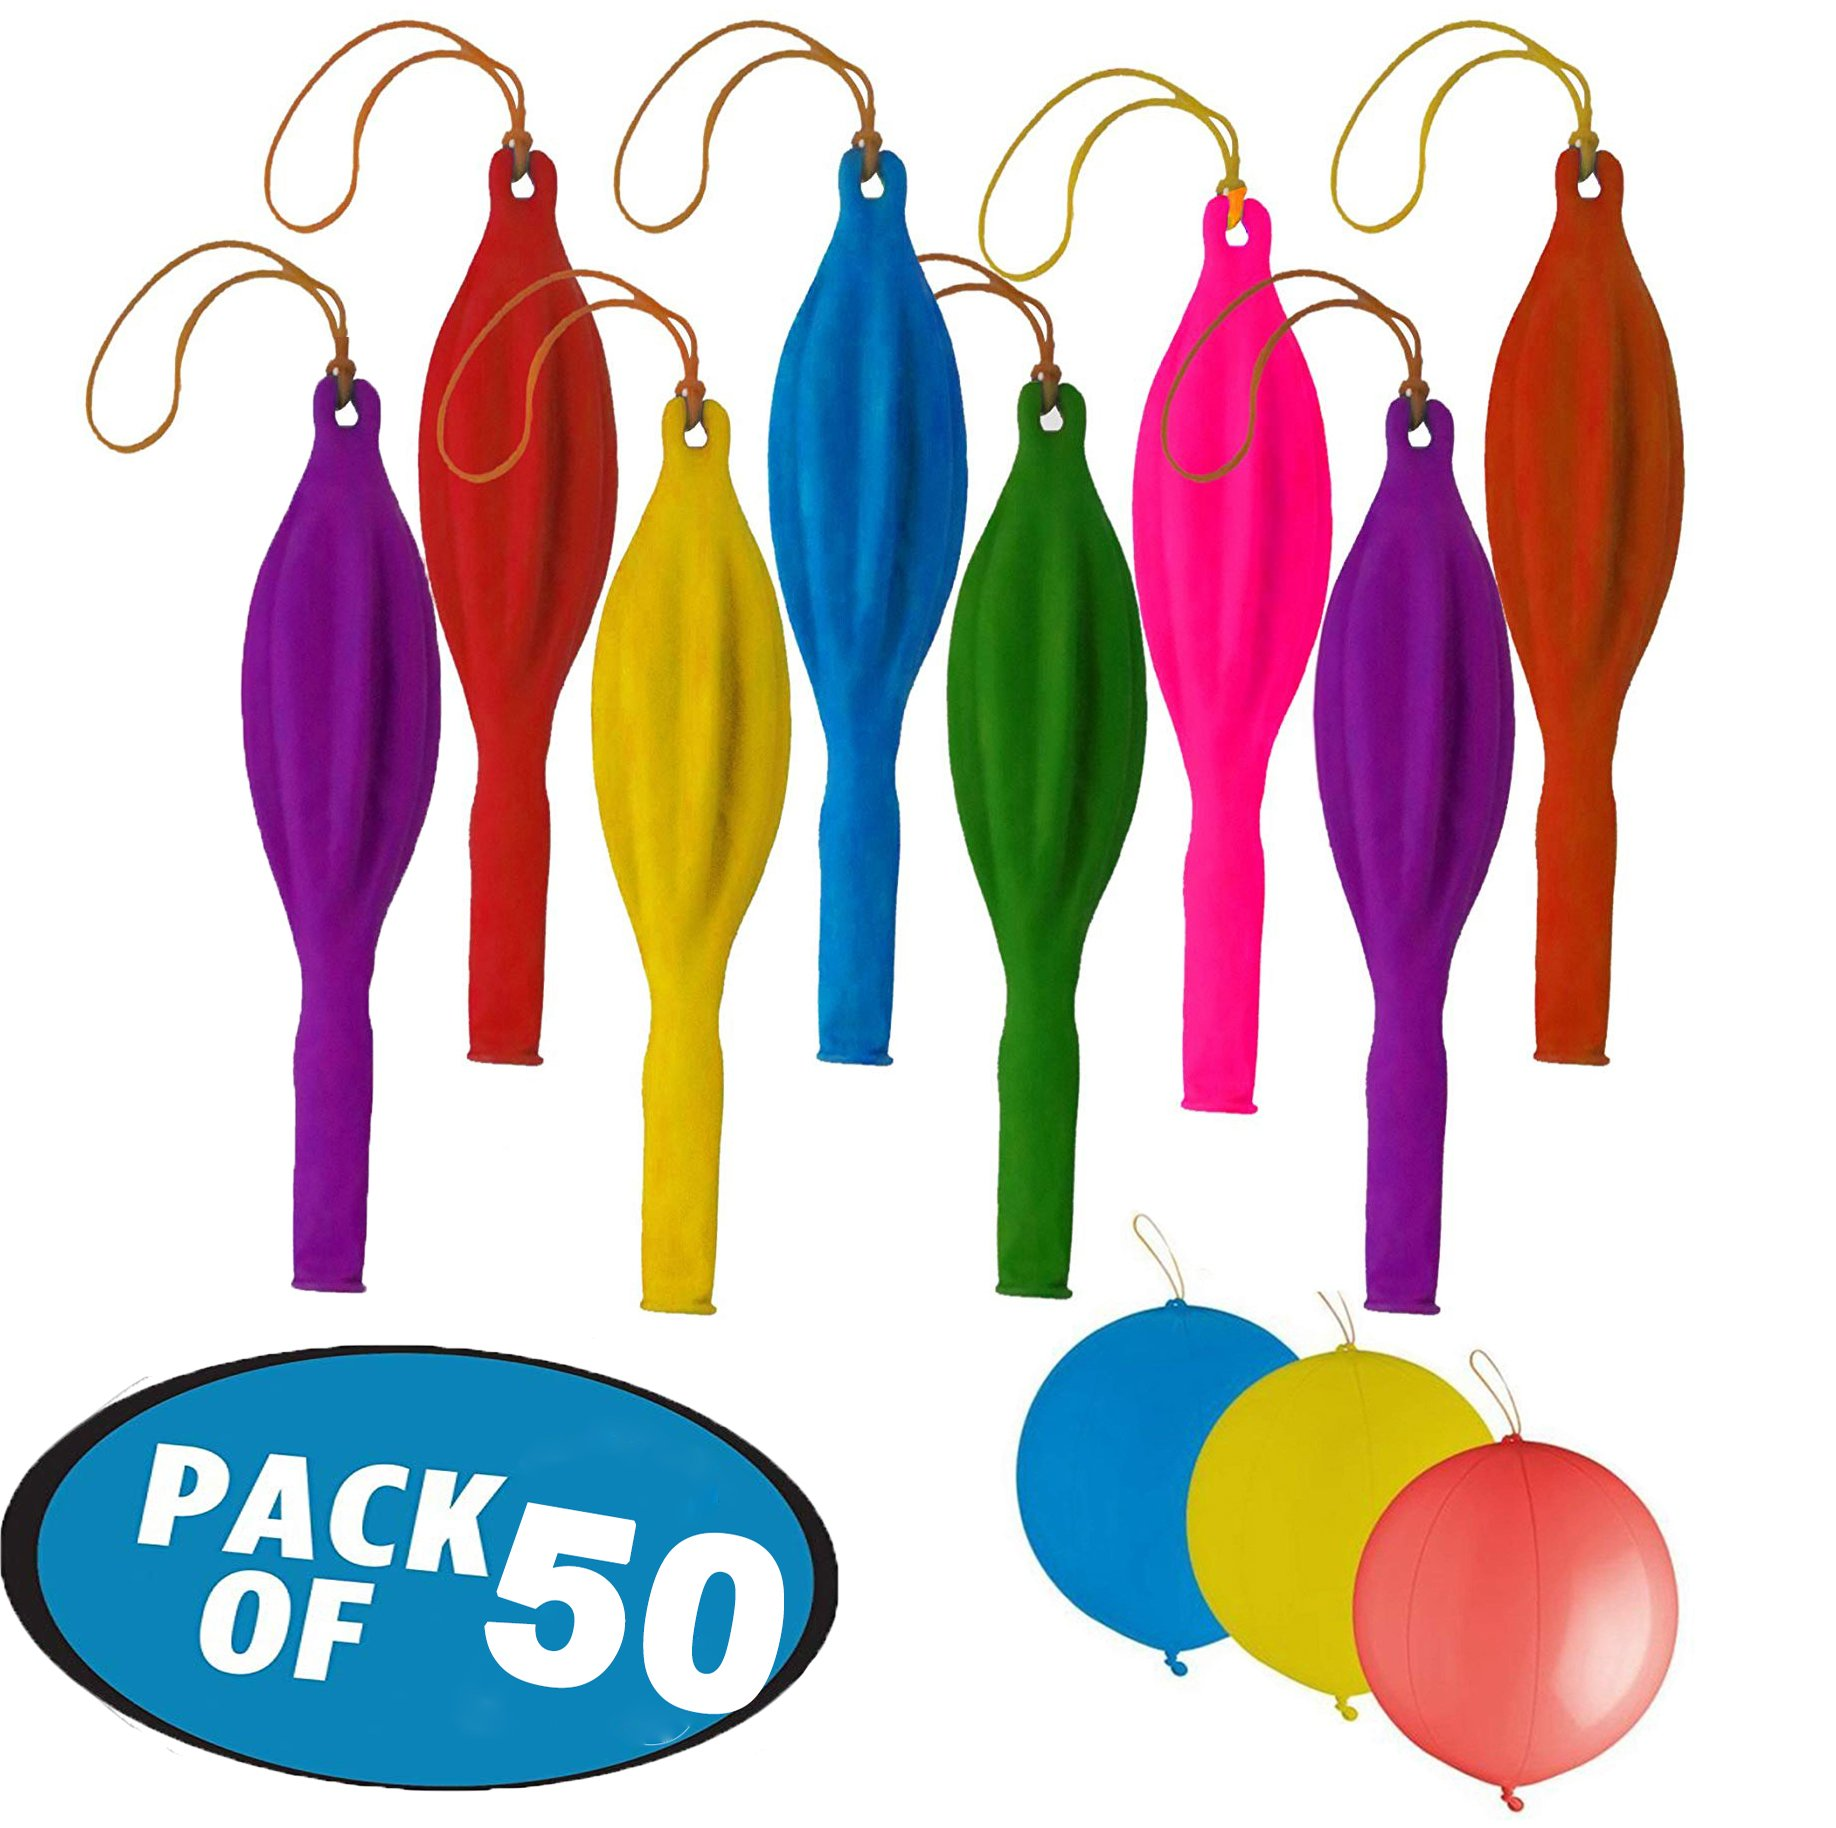 Originalidad 50pcs 18'' Assorted Color Punching Balloons, Punch Balls with Rubber Band Handle for Party, Wedding